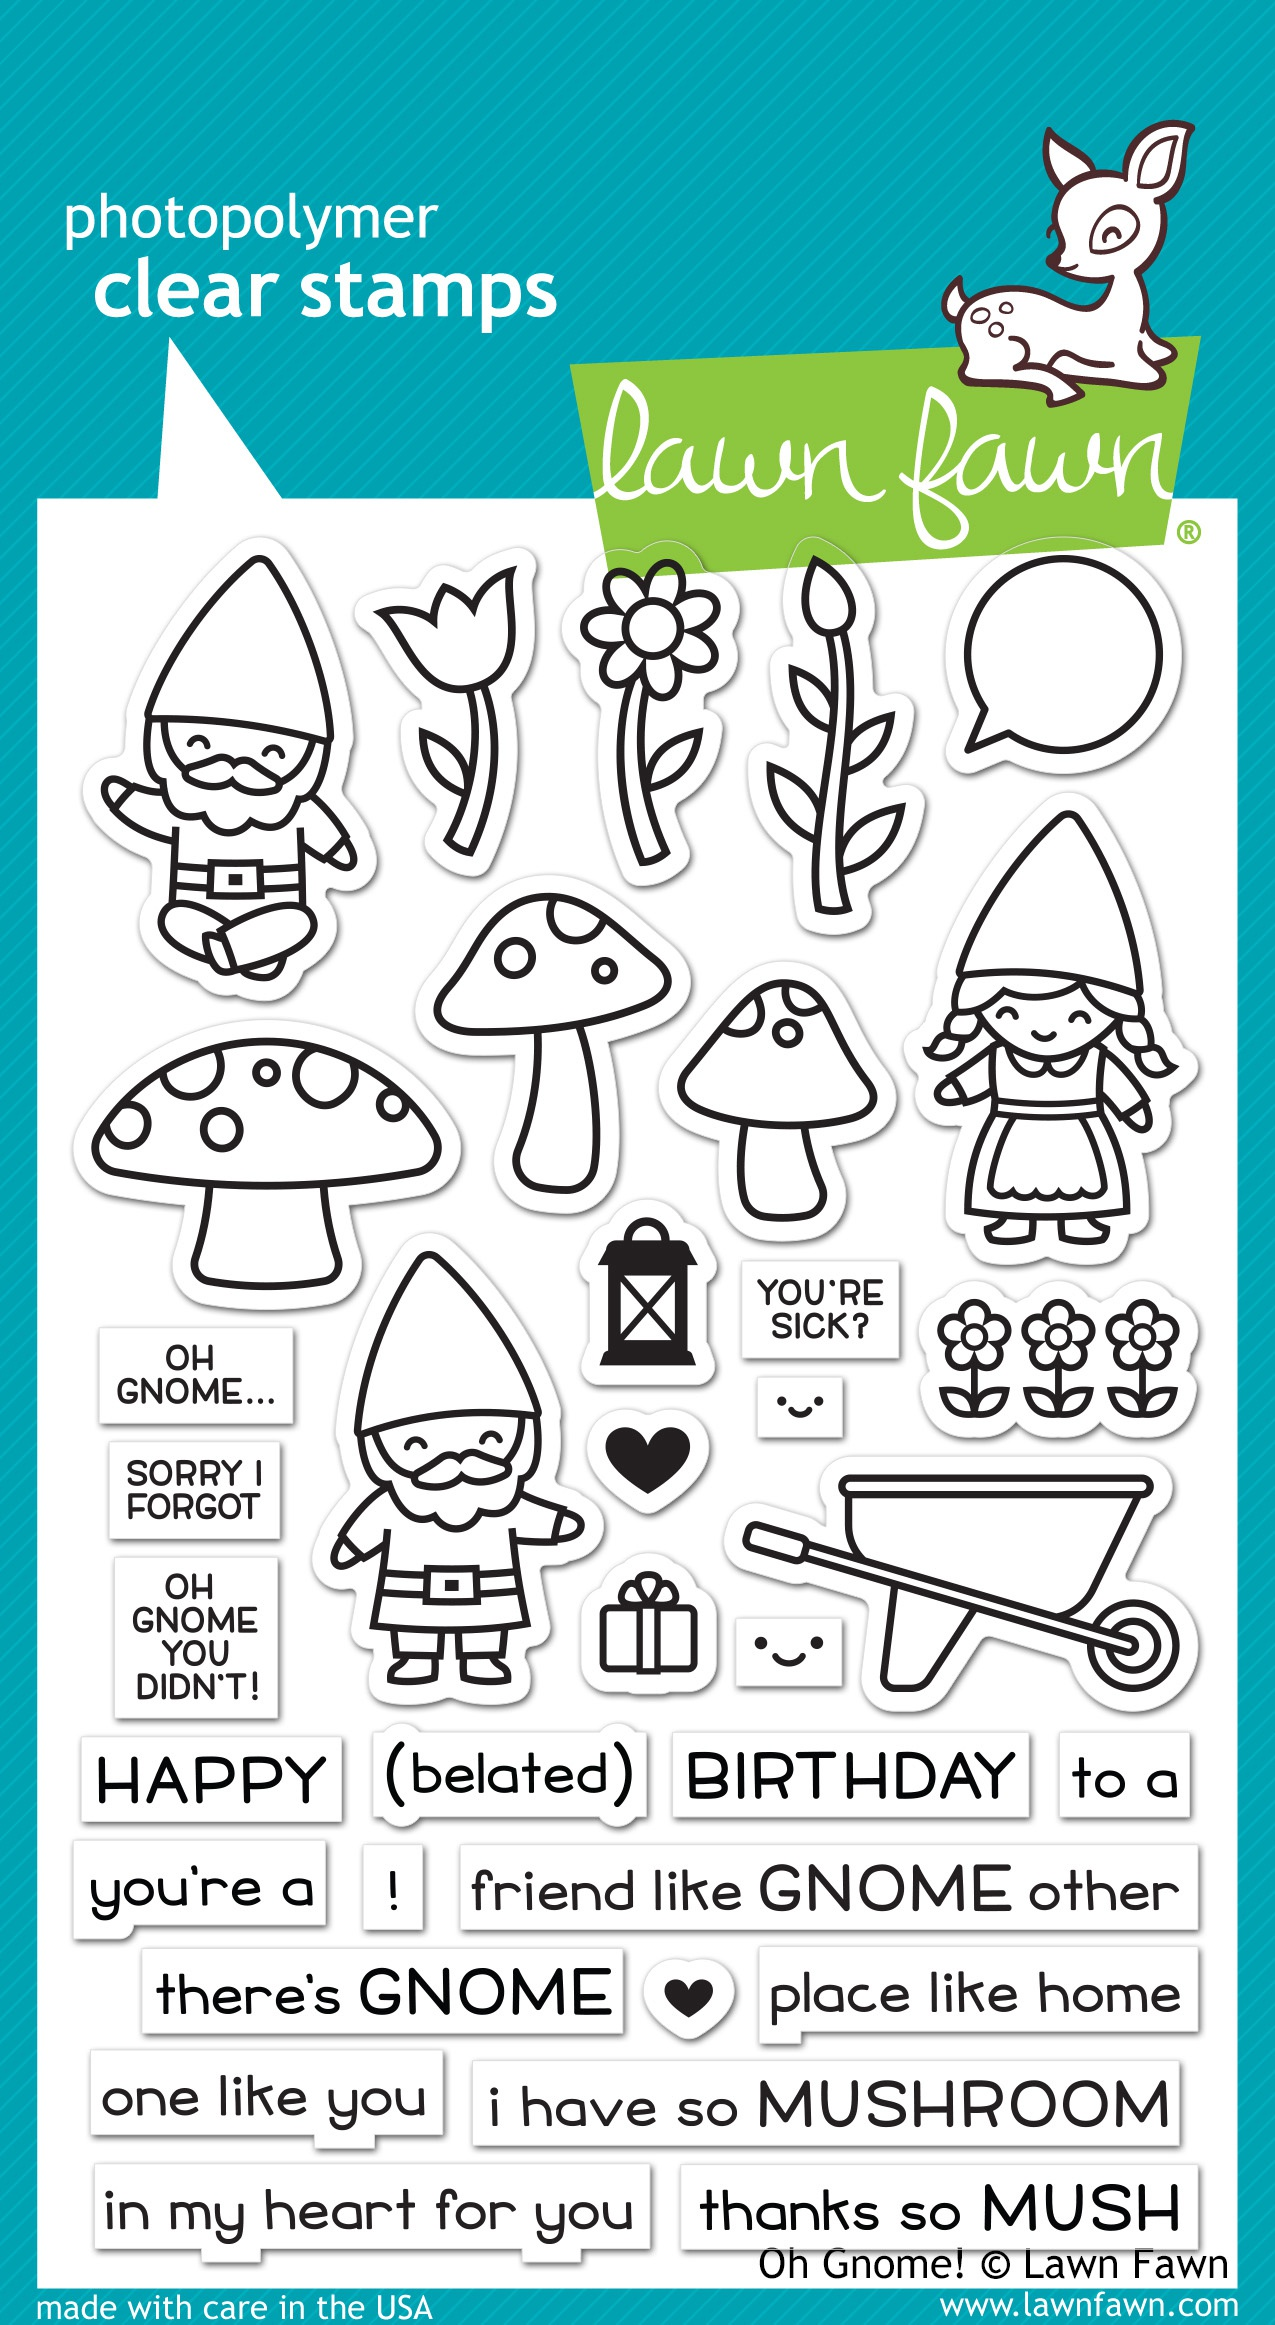 Lawn Fawn Clear Stamps 4X6-Oh Gnome!